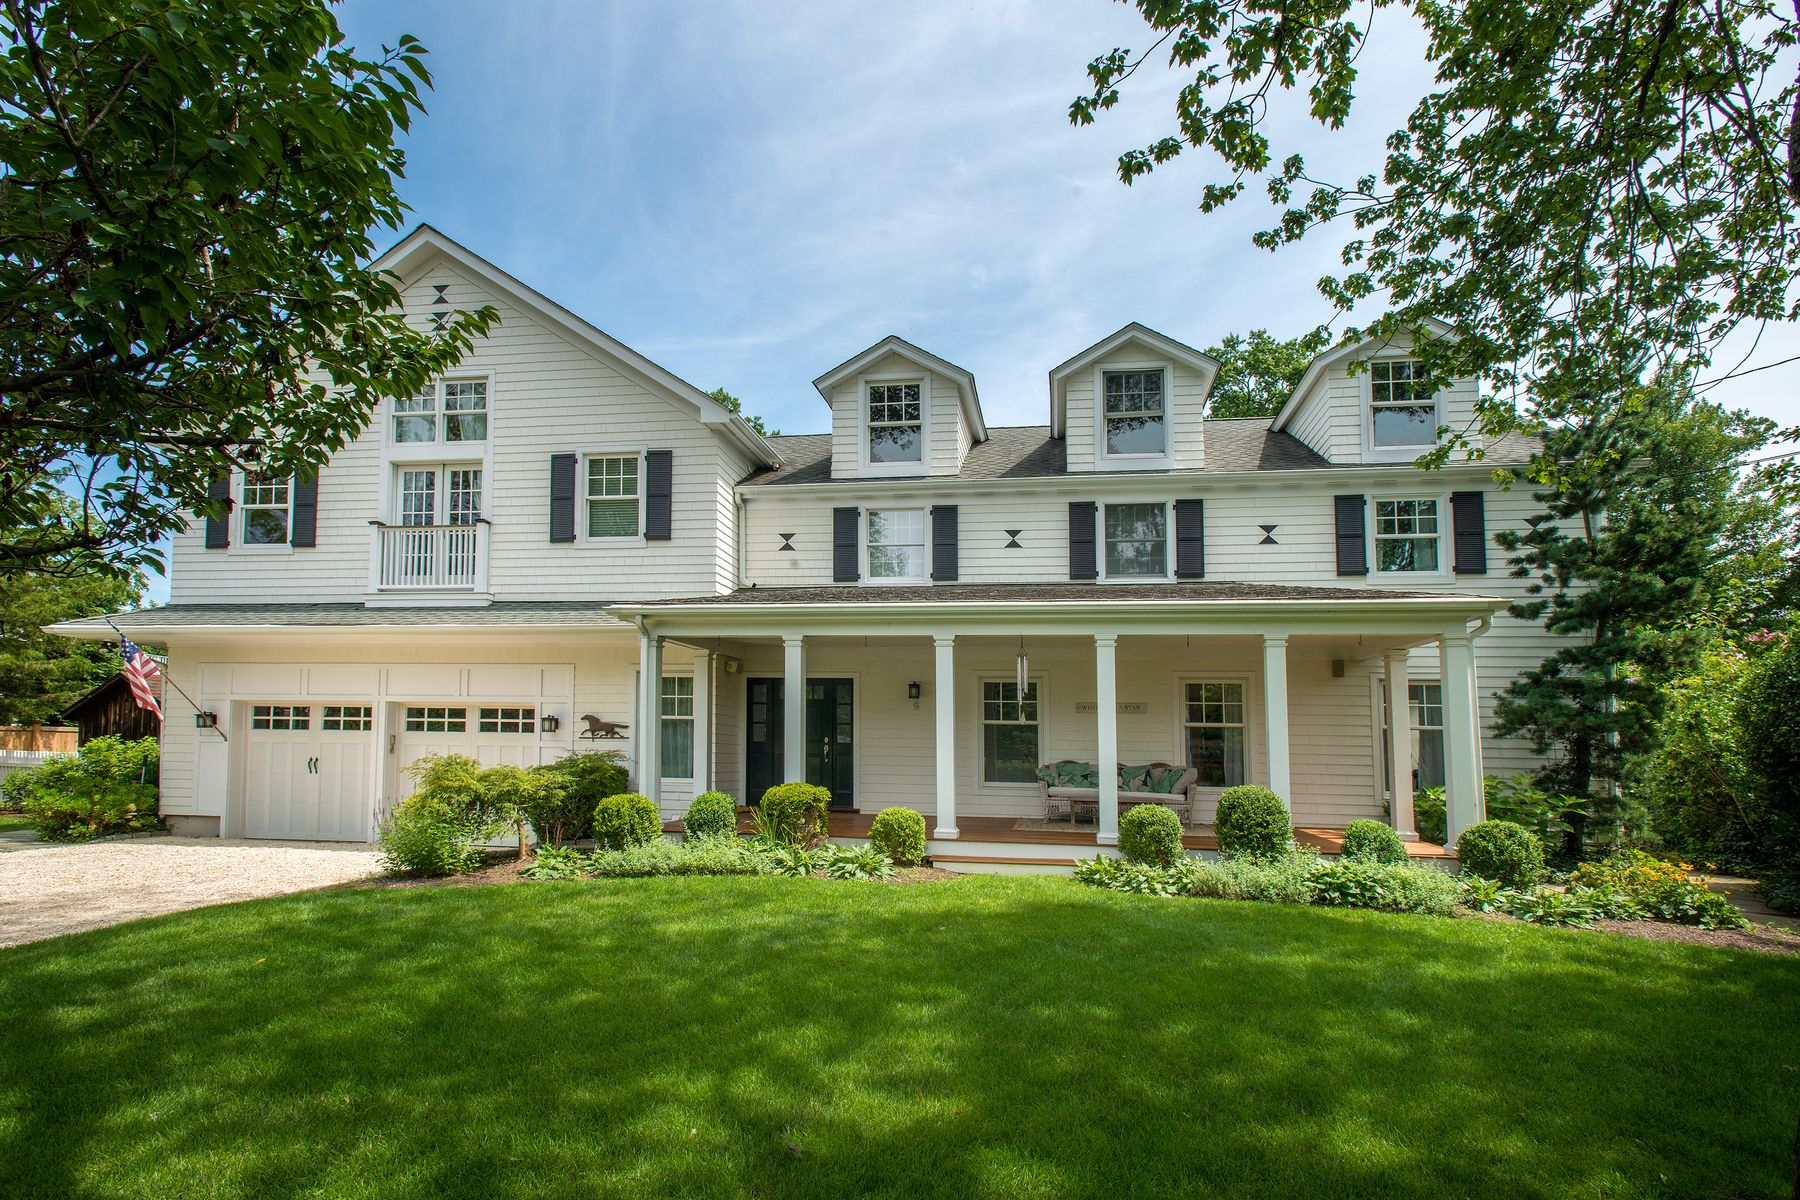 Single Family Homes for Sale at 9 Grace Street Old Greenwich, Connecticut 06870 United States